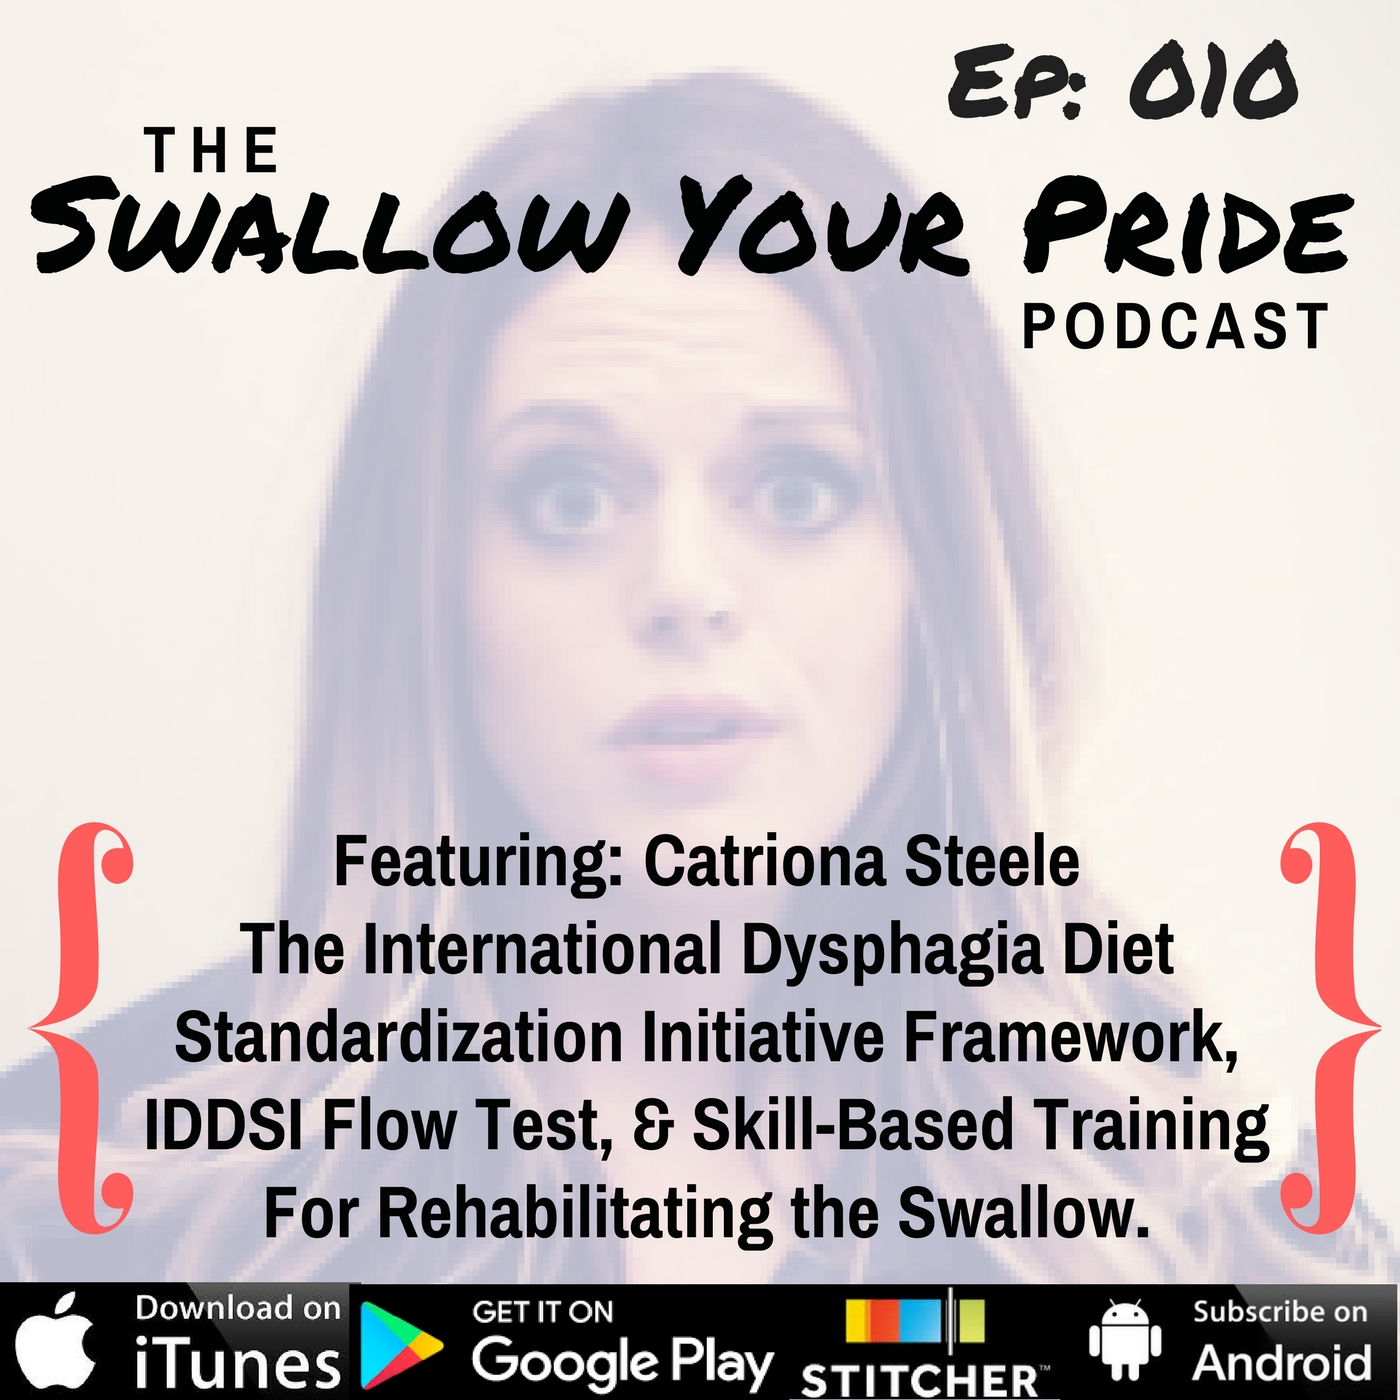 010 – Catriona Steele Ph.D., CCC-SLP, F-ASHA – The International Dysphagia Diet Standardization Initiative Framework, IDDSI Flow Test, & Skill-Based Training For Rehabilitating the Swallow.